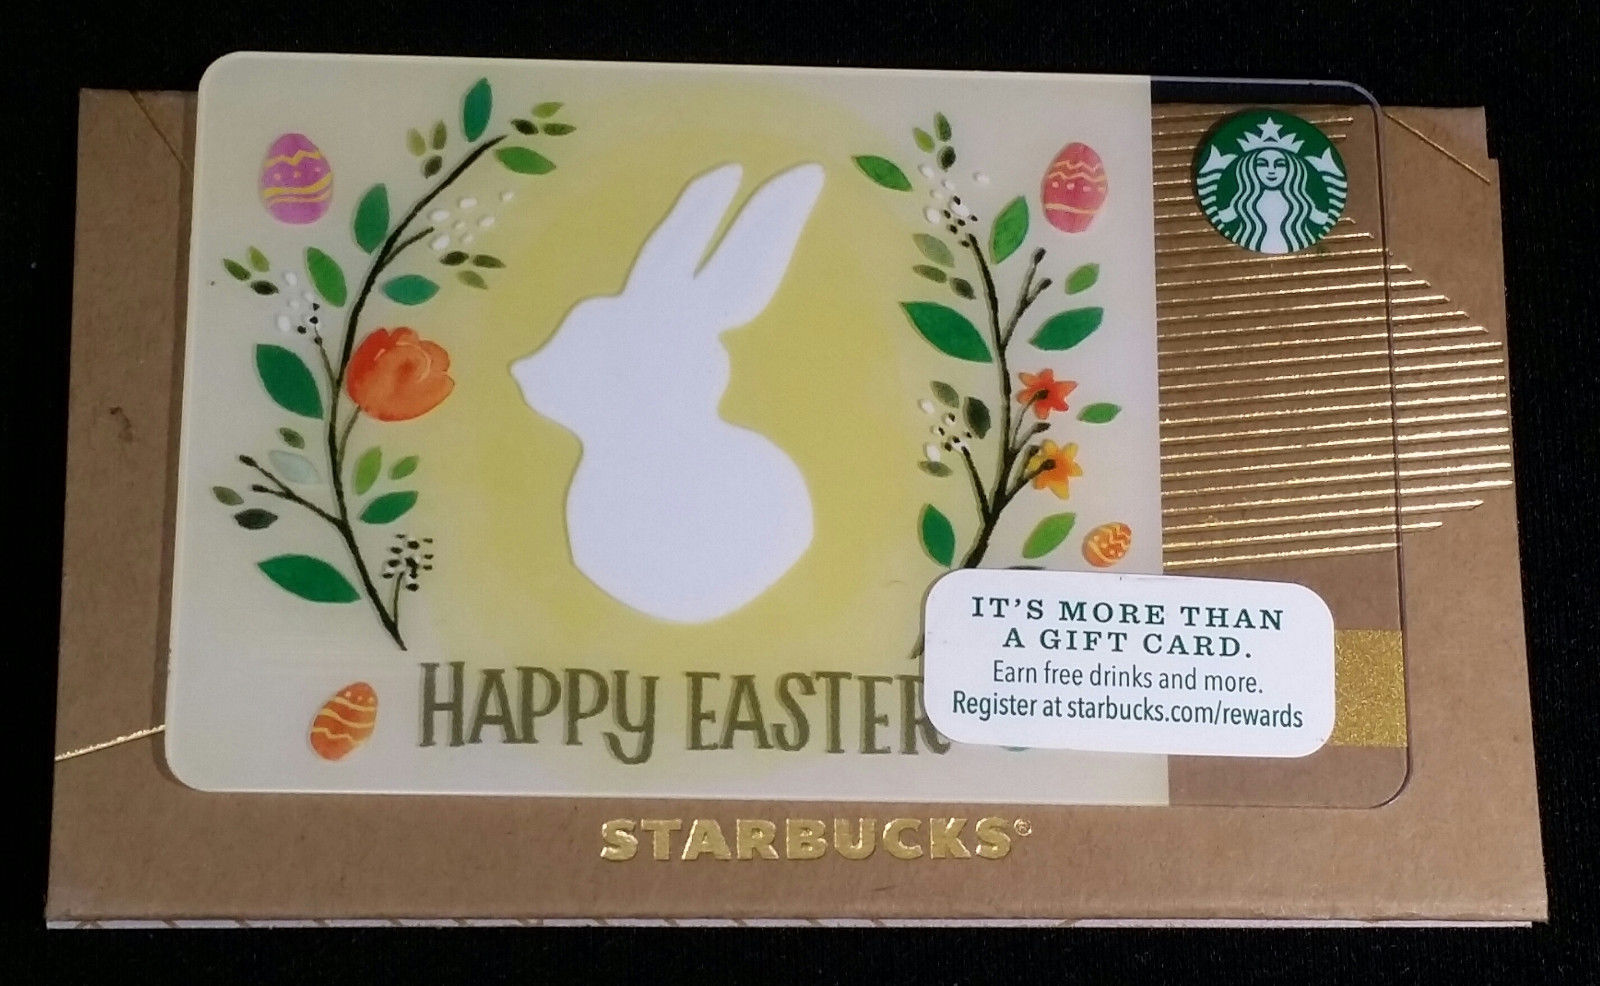 6118 2015 starbucks happy easter white and 50 similar items 6118 2015 starbucks happy easter white bunny eggs flowers one empty gift card negle Gallery